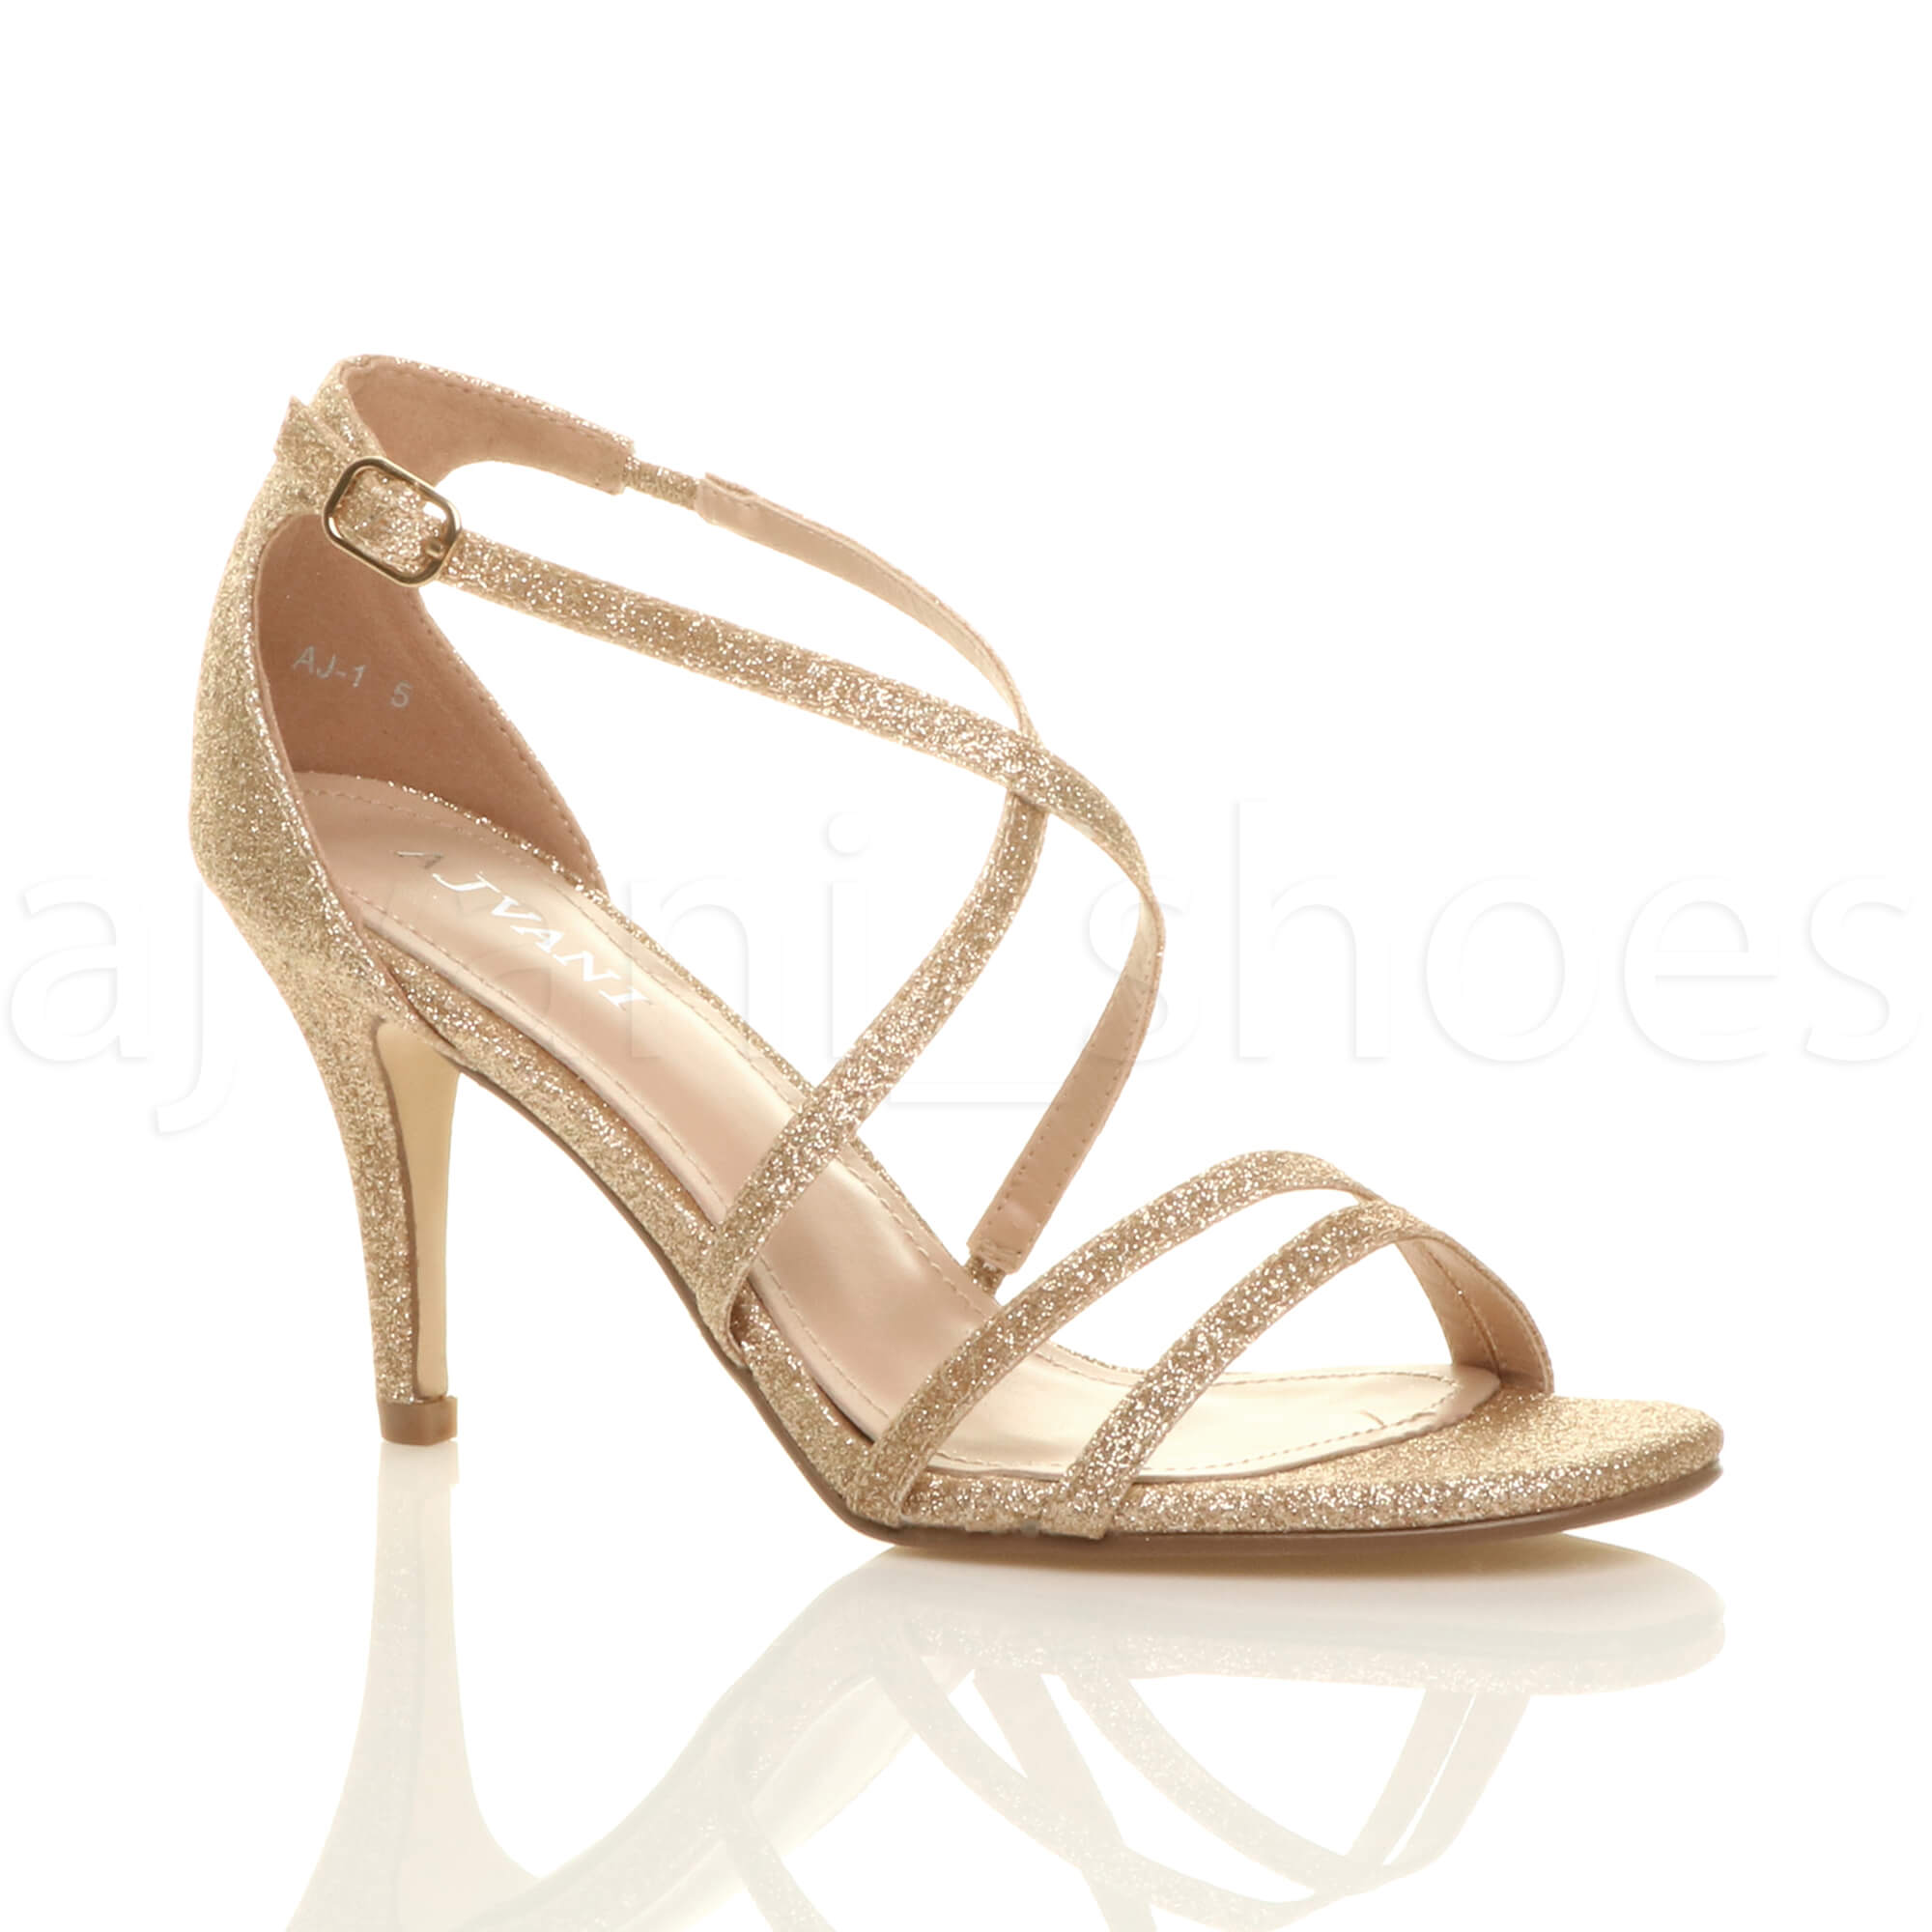 Find great deals on eBay for Strappy Sandal Heels in Women's Clothing, Shoes and Heels. Shop with confidence.